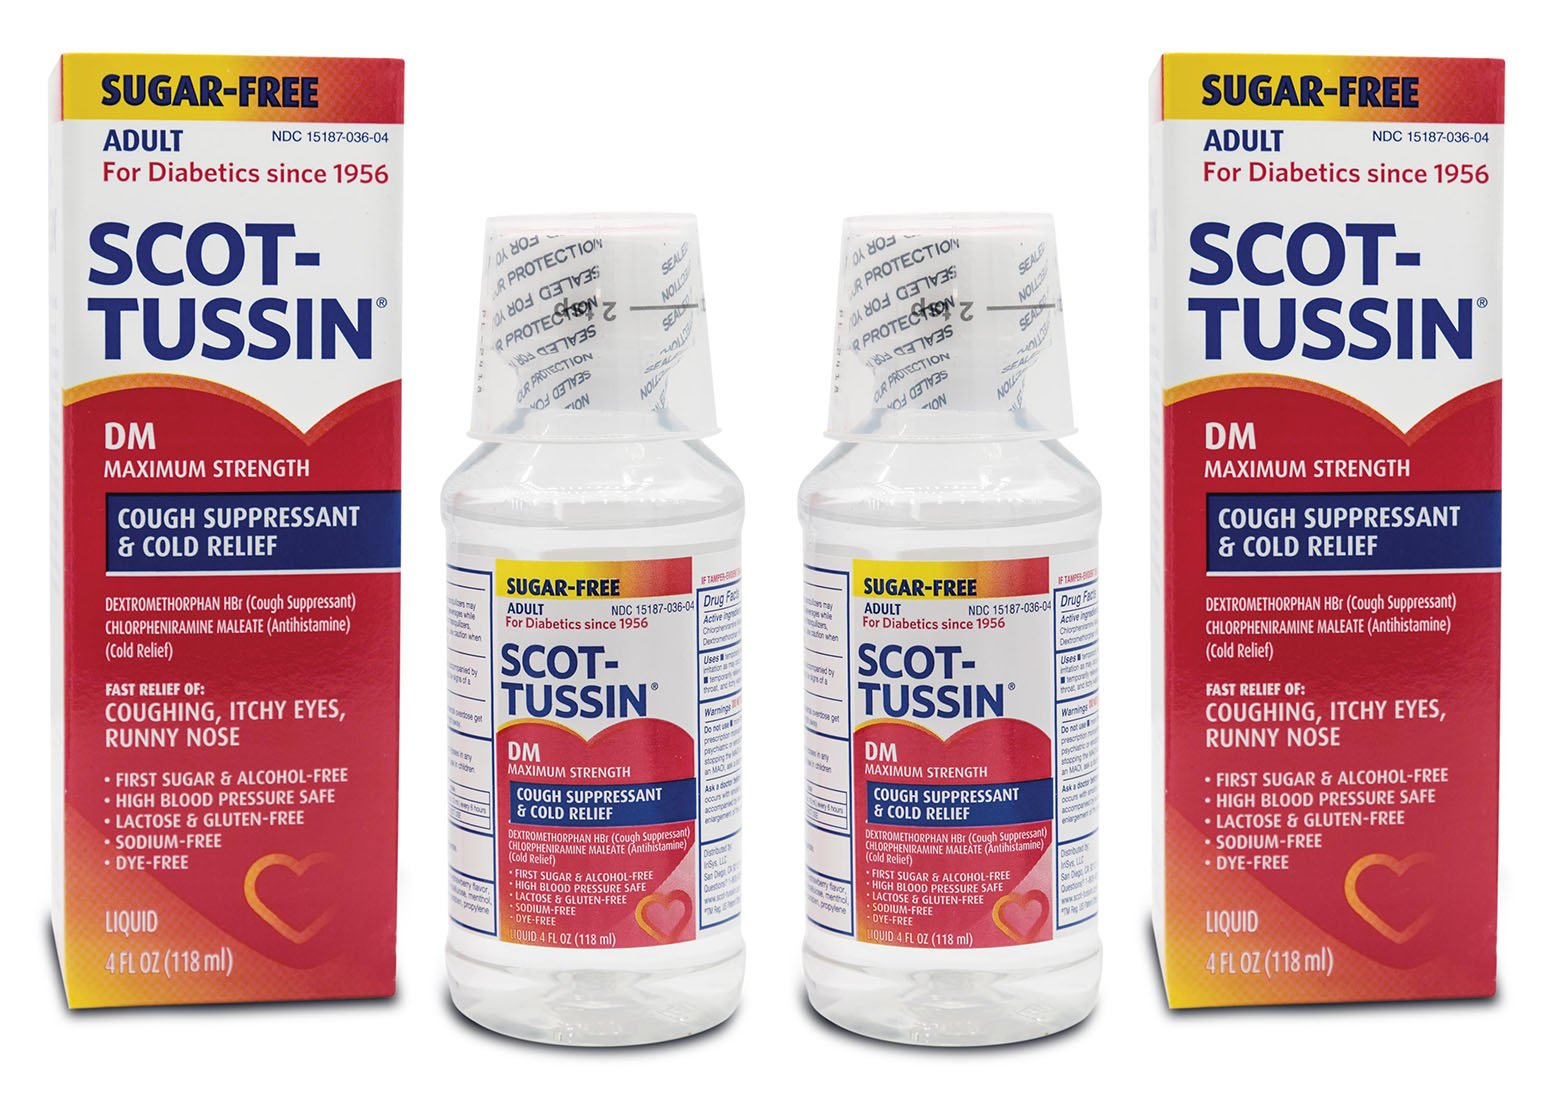 Scot-Tussin DM Cough Syrup with Chlorpheniramine Maleate, Alcohol-Free, Sugar-Free Cough Suppressant for Fast Cold Relief, 4oz Pack of 2 by Scot-Tussin